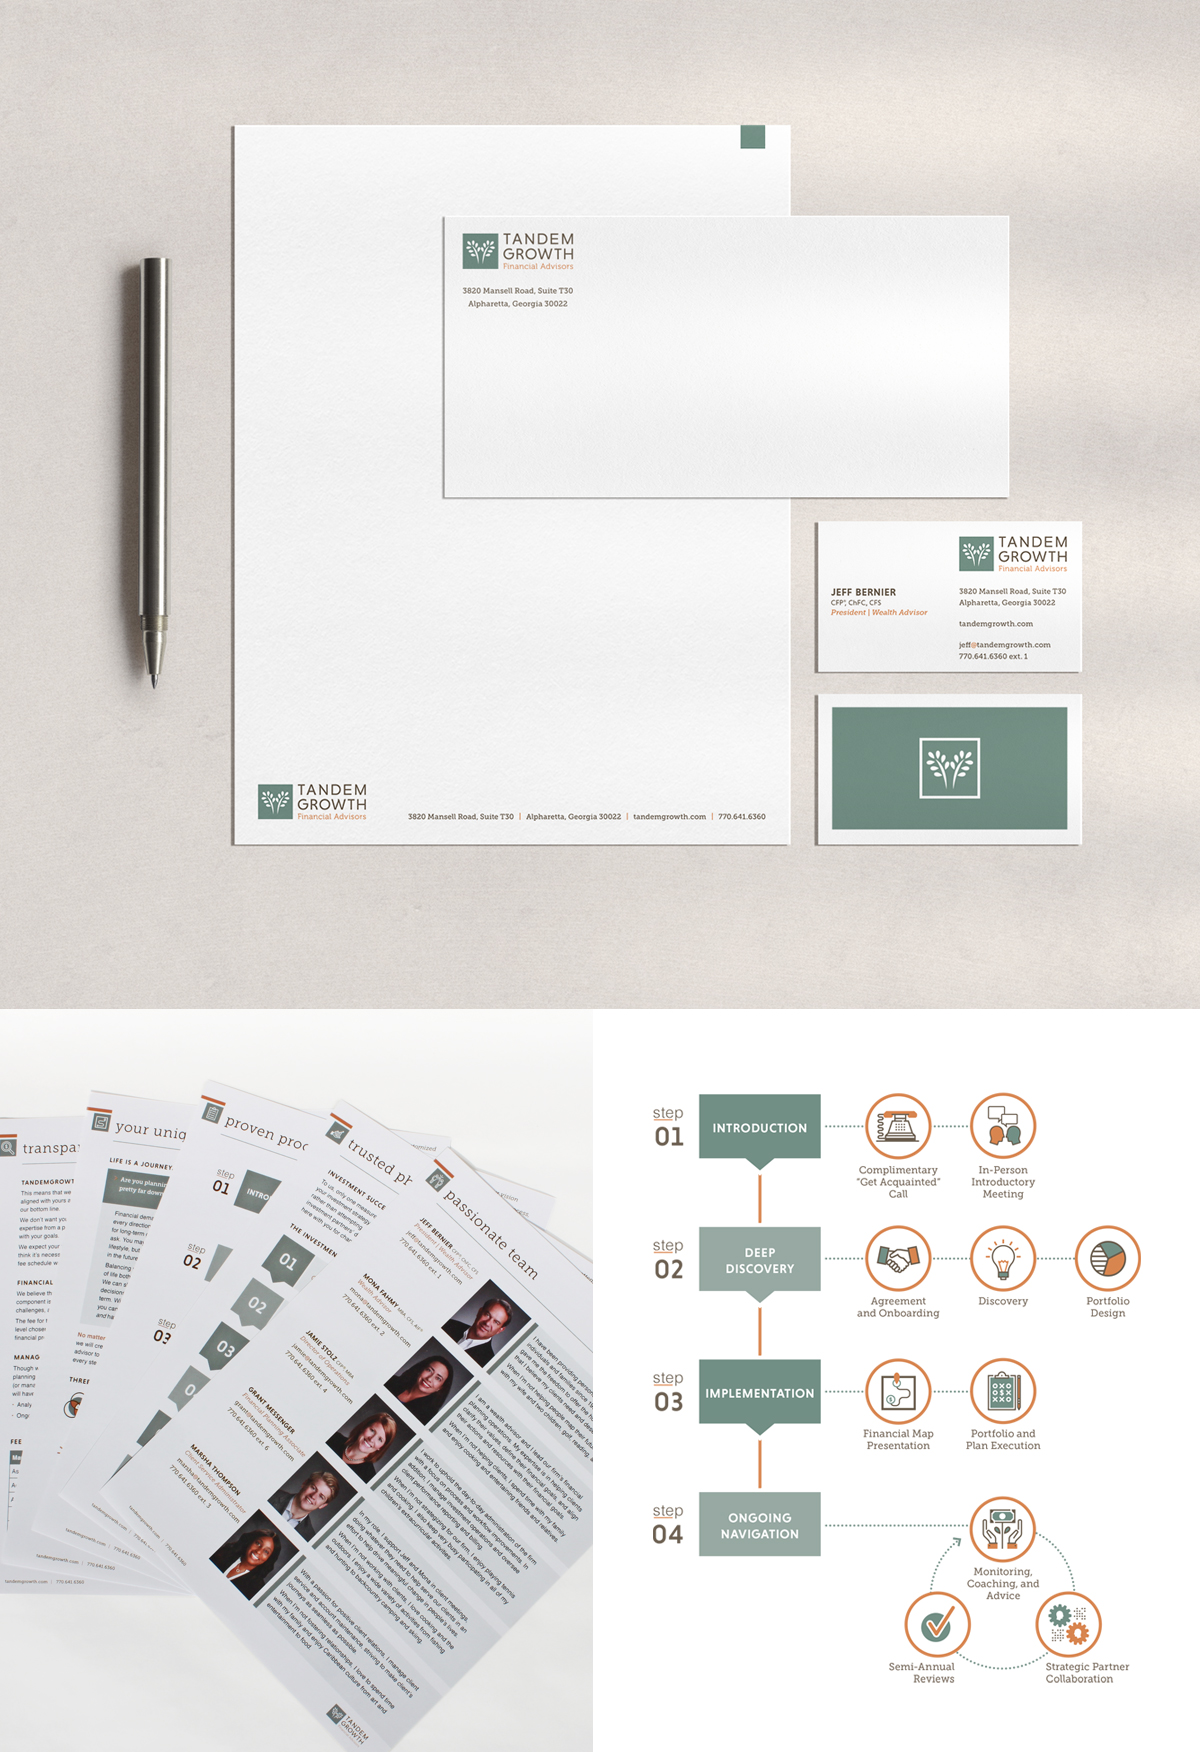 TandemGrowth Financial Advisors - Stationery, Business Card, Sell Sheets, Infographic - by Annatto